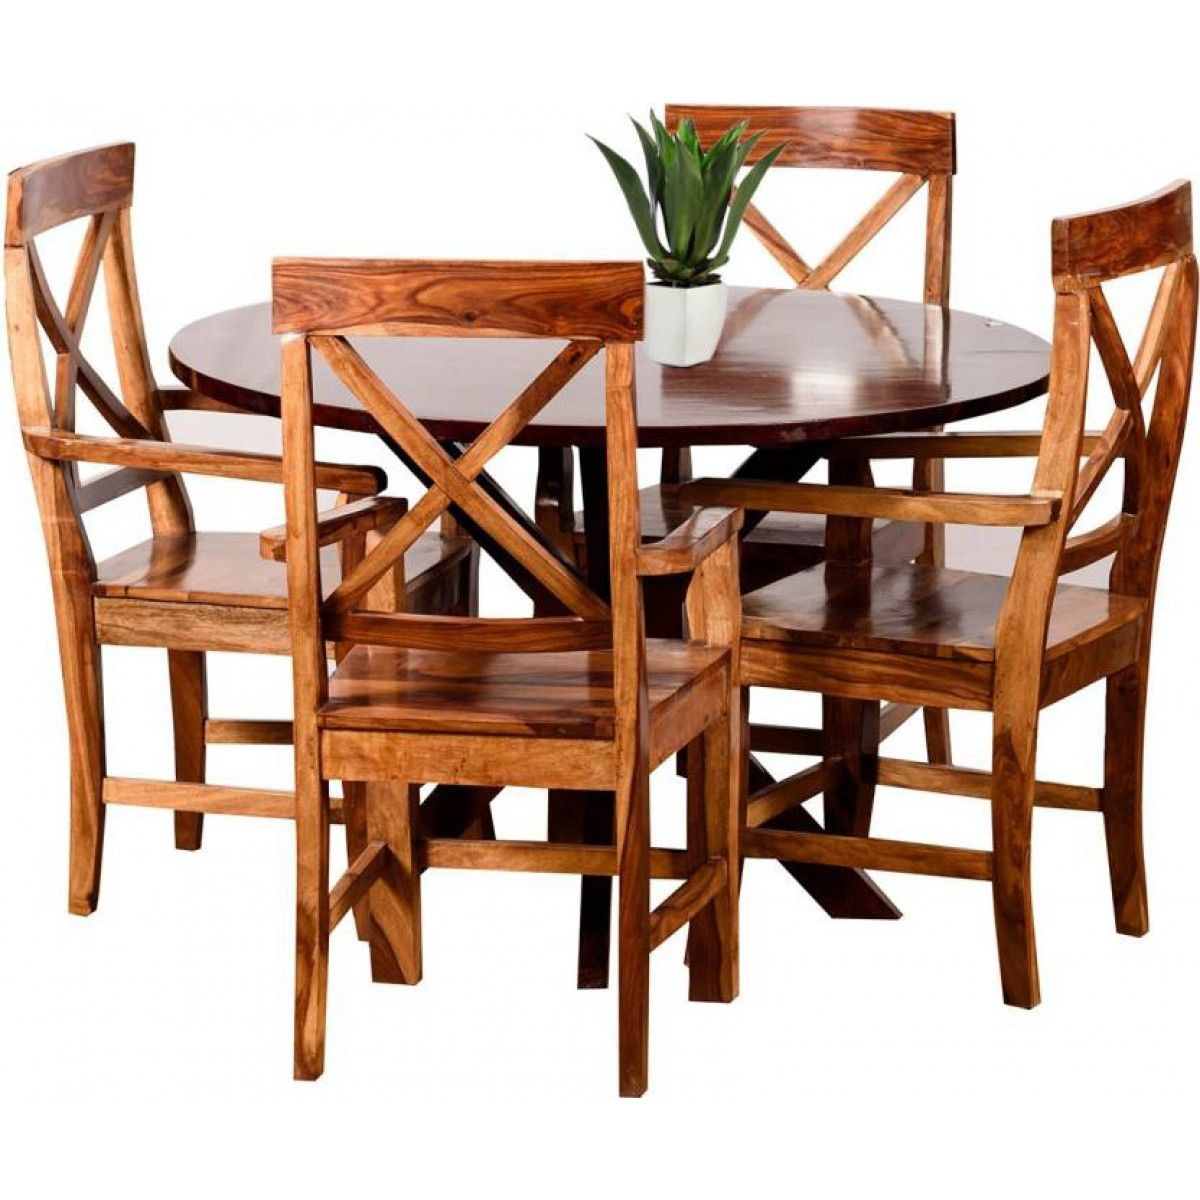 4a11b3dc557 Rock Solid Wooden Dining Table Set I Gorevizon W X H X D  1340 Mm X 970 Mm  X 1340 Mm Number Of Benches 1 Dining Table Number Of Chairs  4 Table Shape   Round